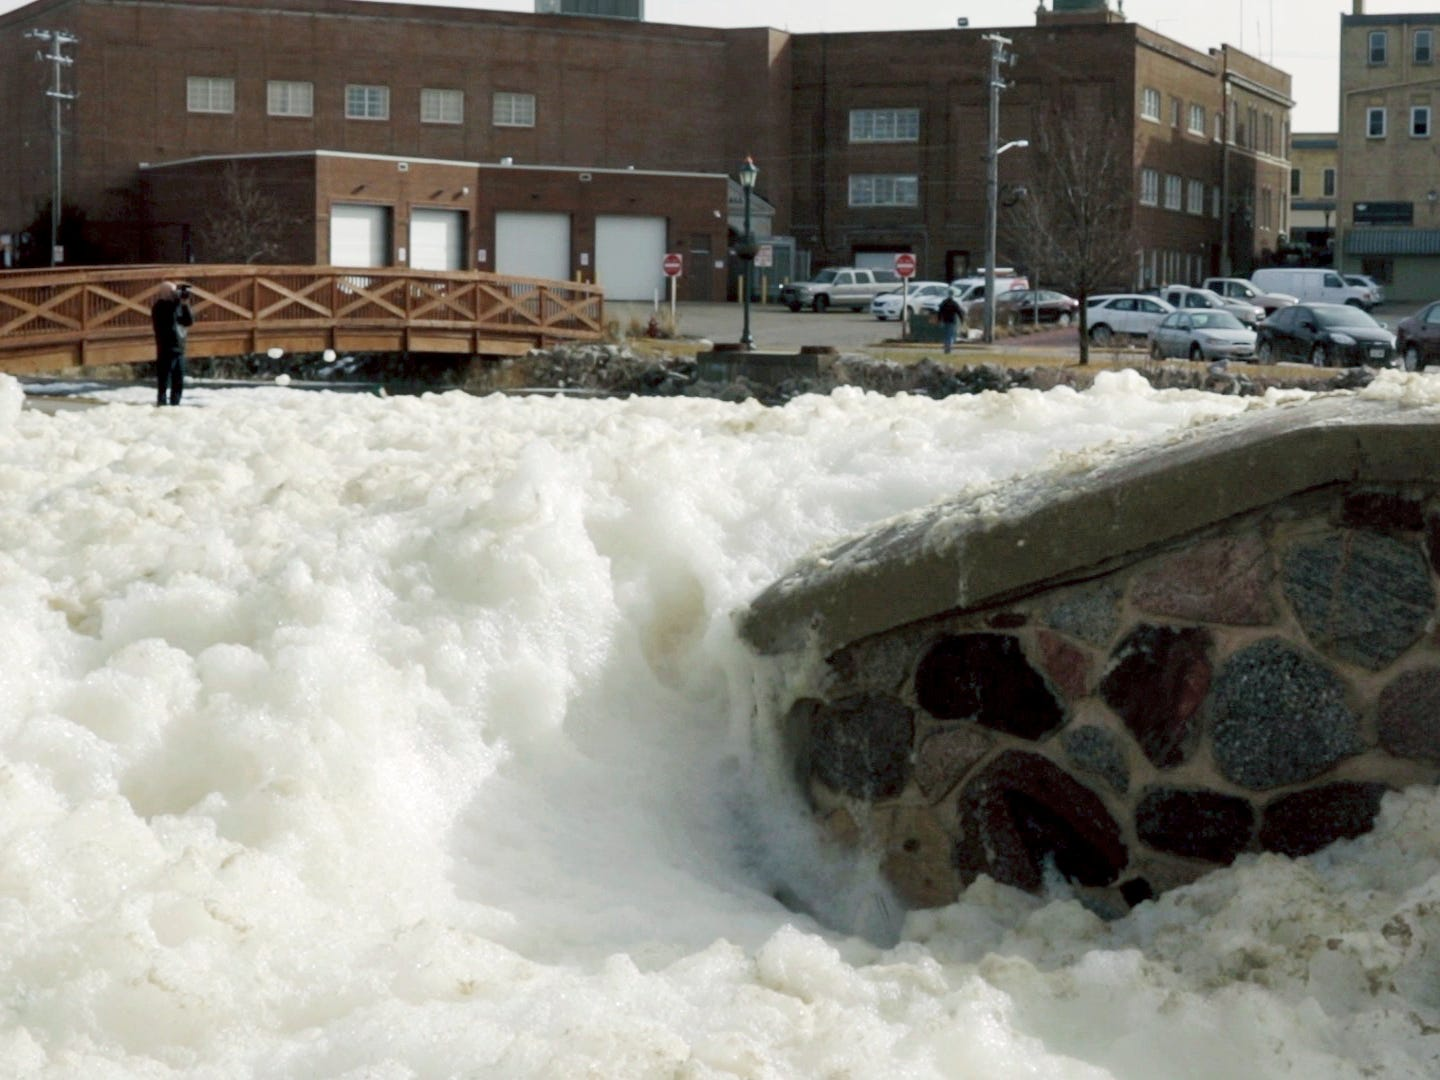 City of Hartford employee Jack Ewing films the foam buildup on the Rubicon River on Thursday, March 14, 2019, in Hartford, Wis. The melting snow, overnight rain and field runoff is what created the large amount of foam to build up.